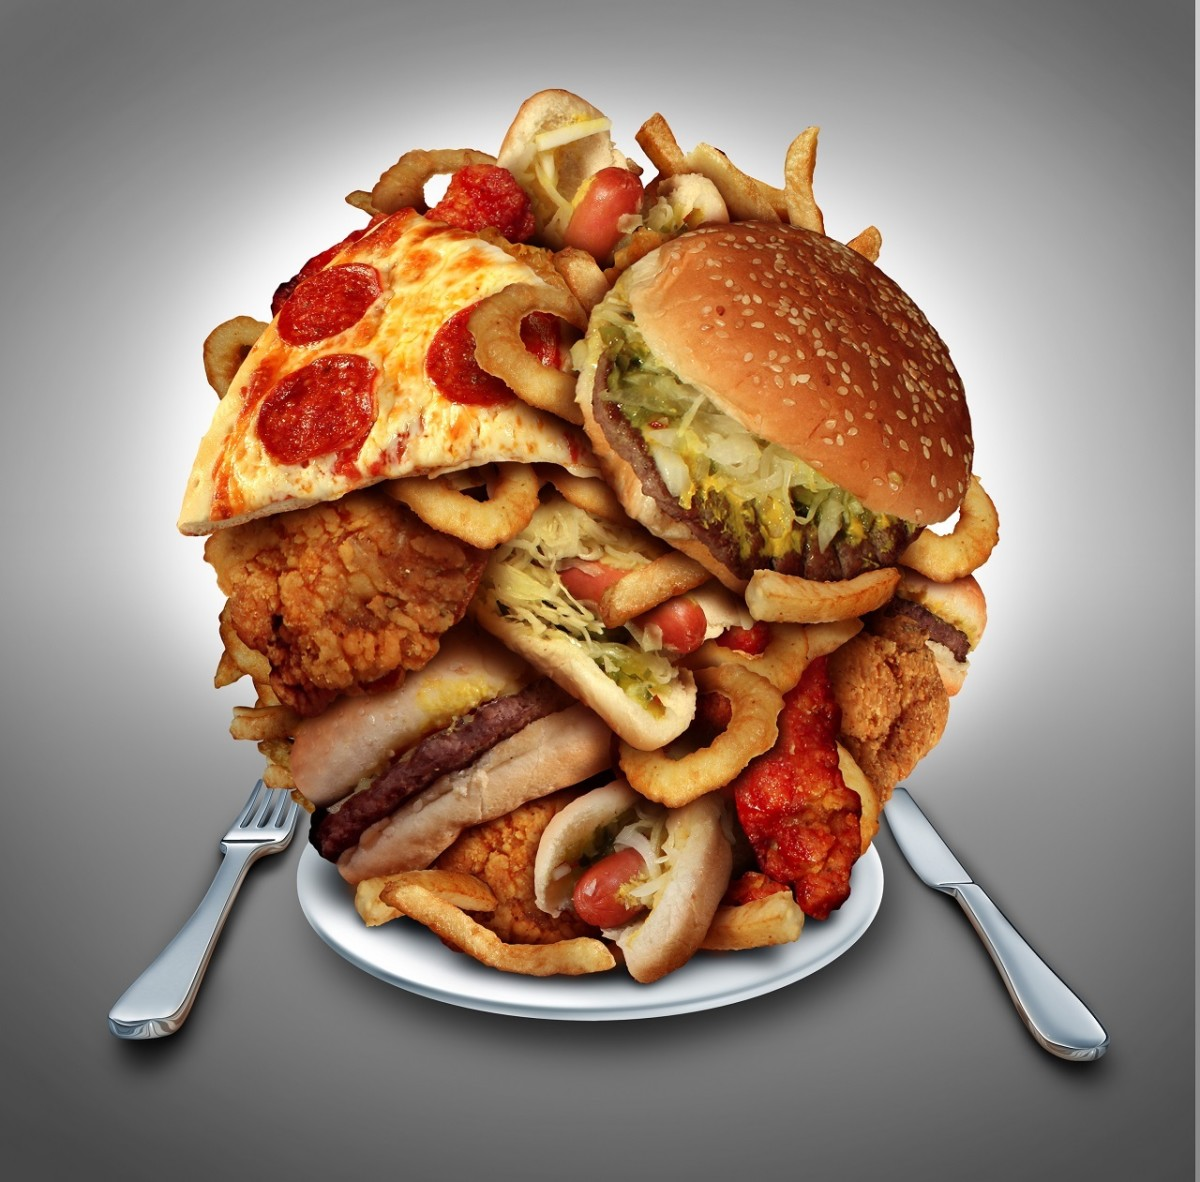 Top 3 Tips to Maintain Good Health Without Quitting Junk Food